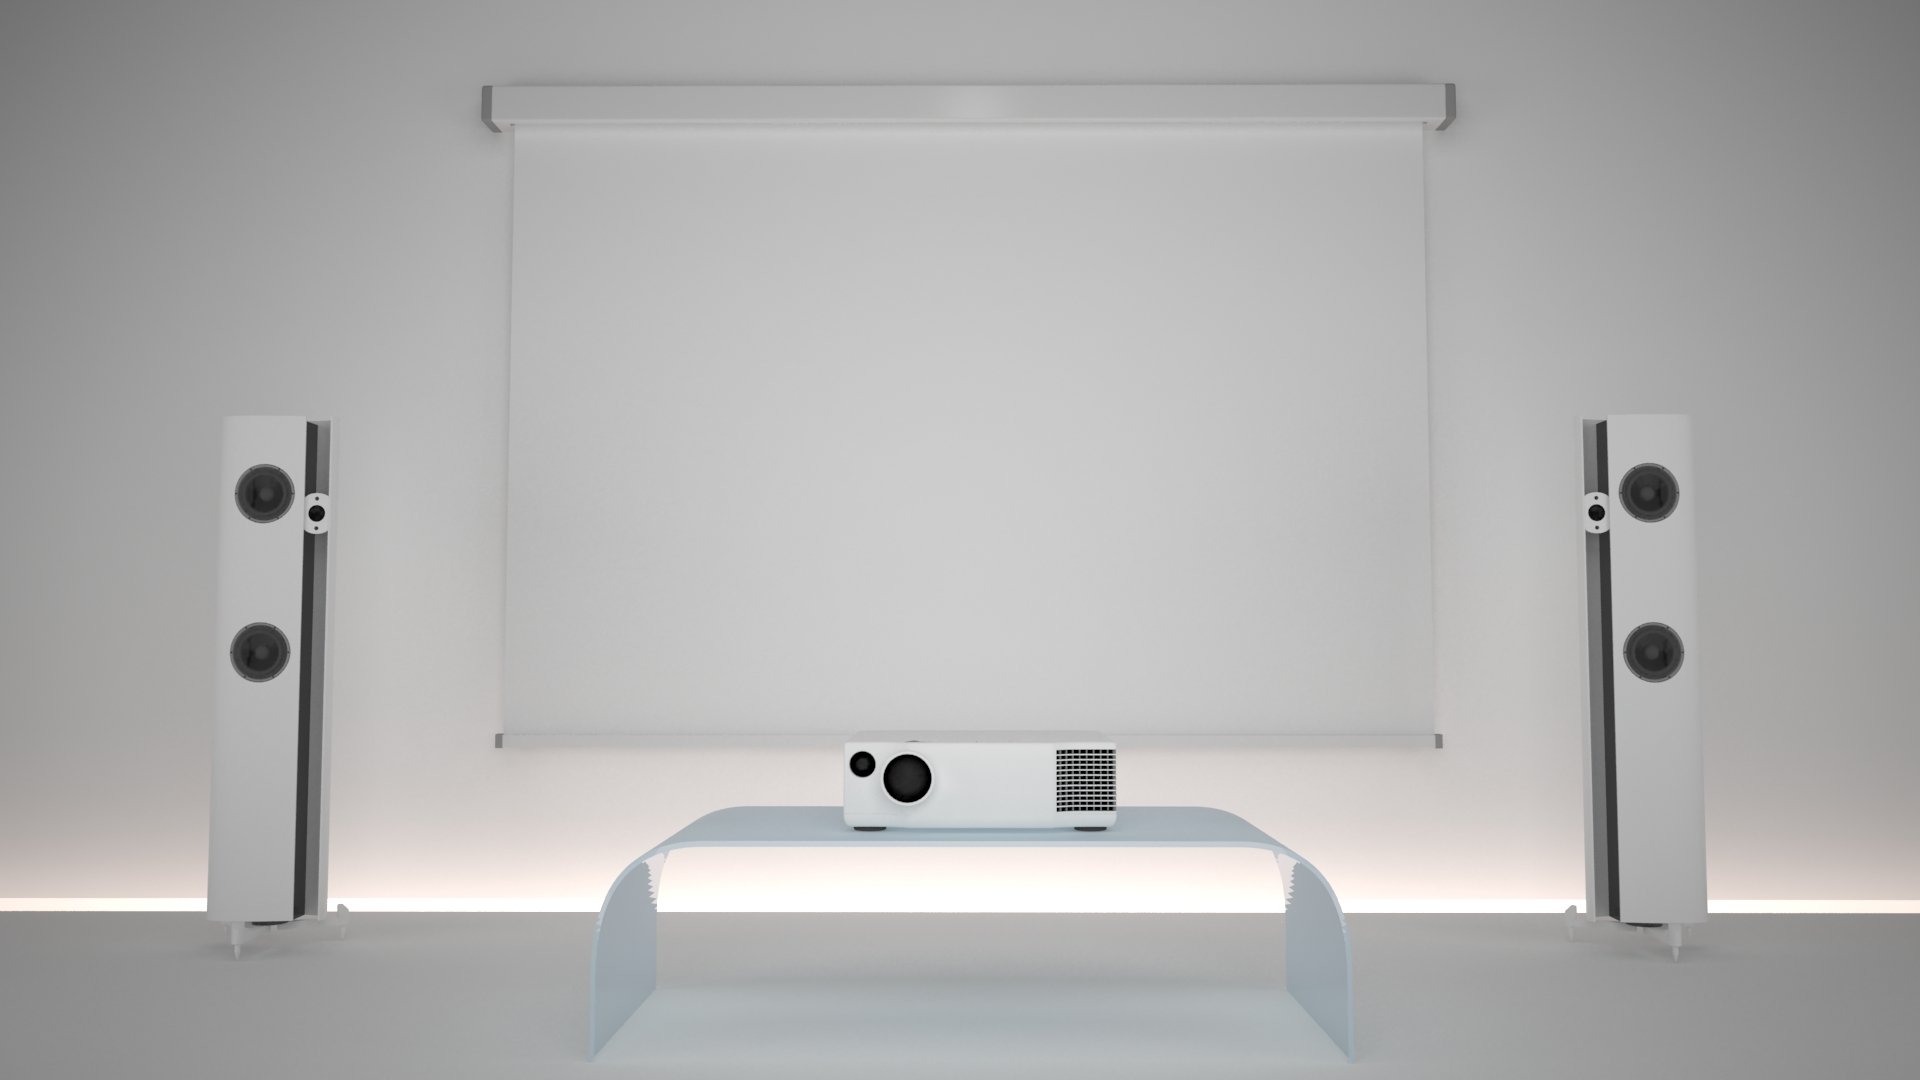 projection_set